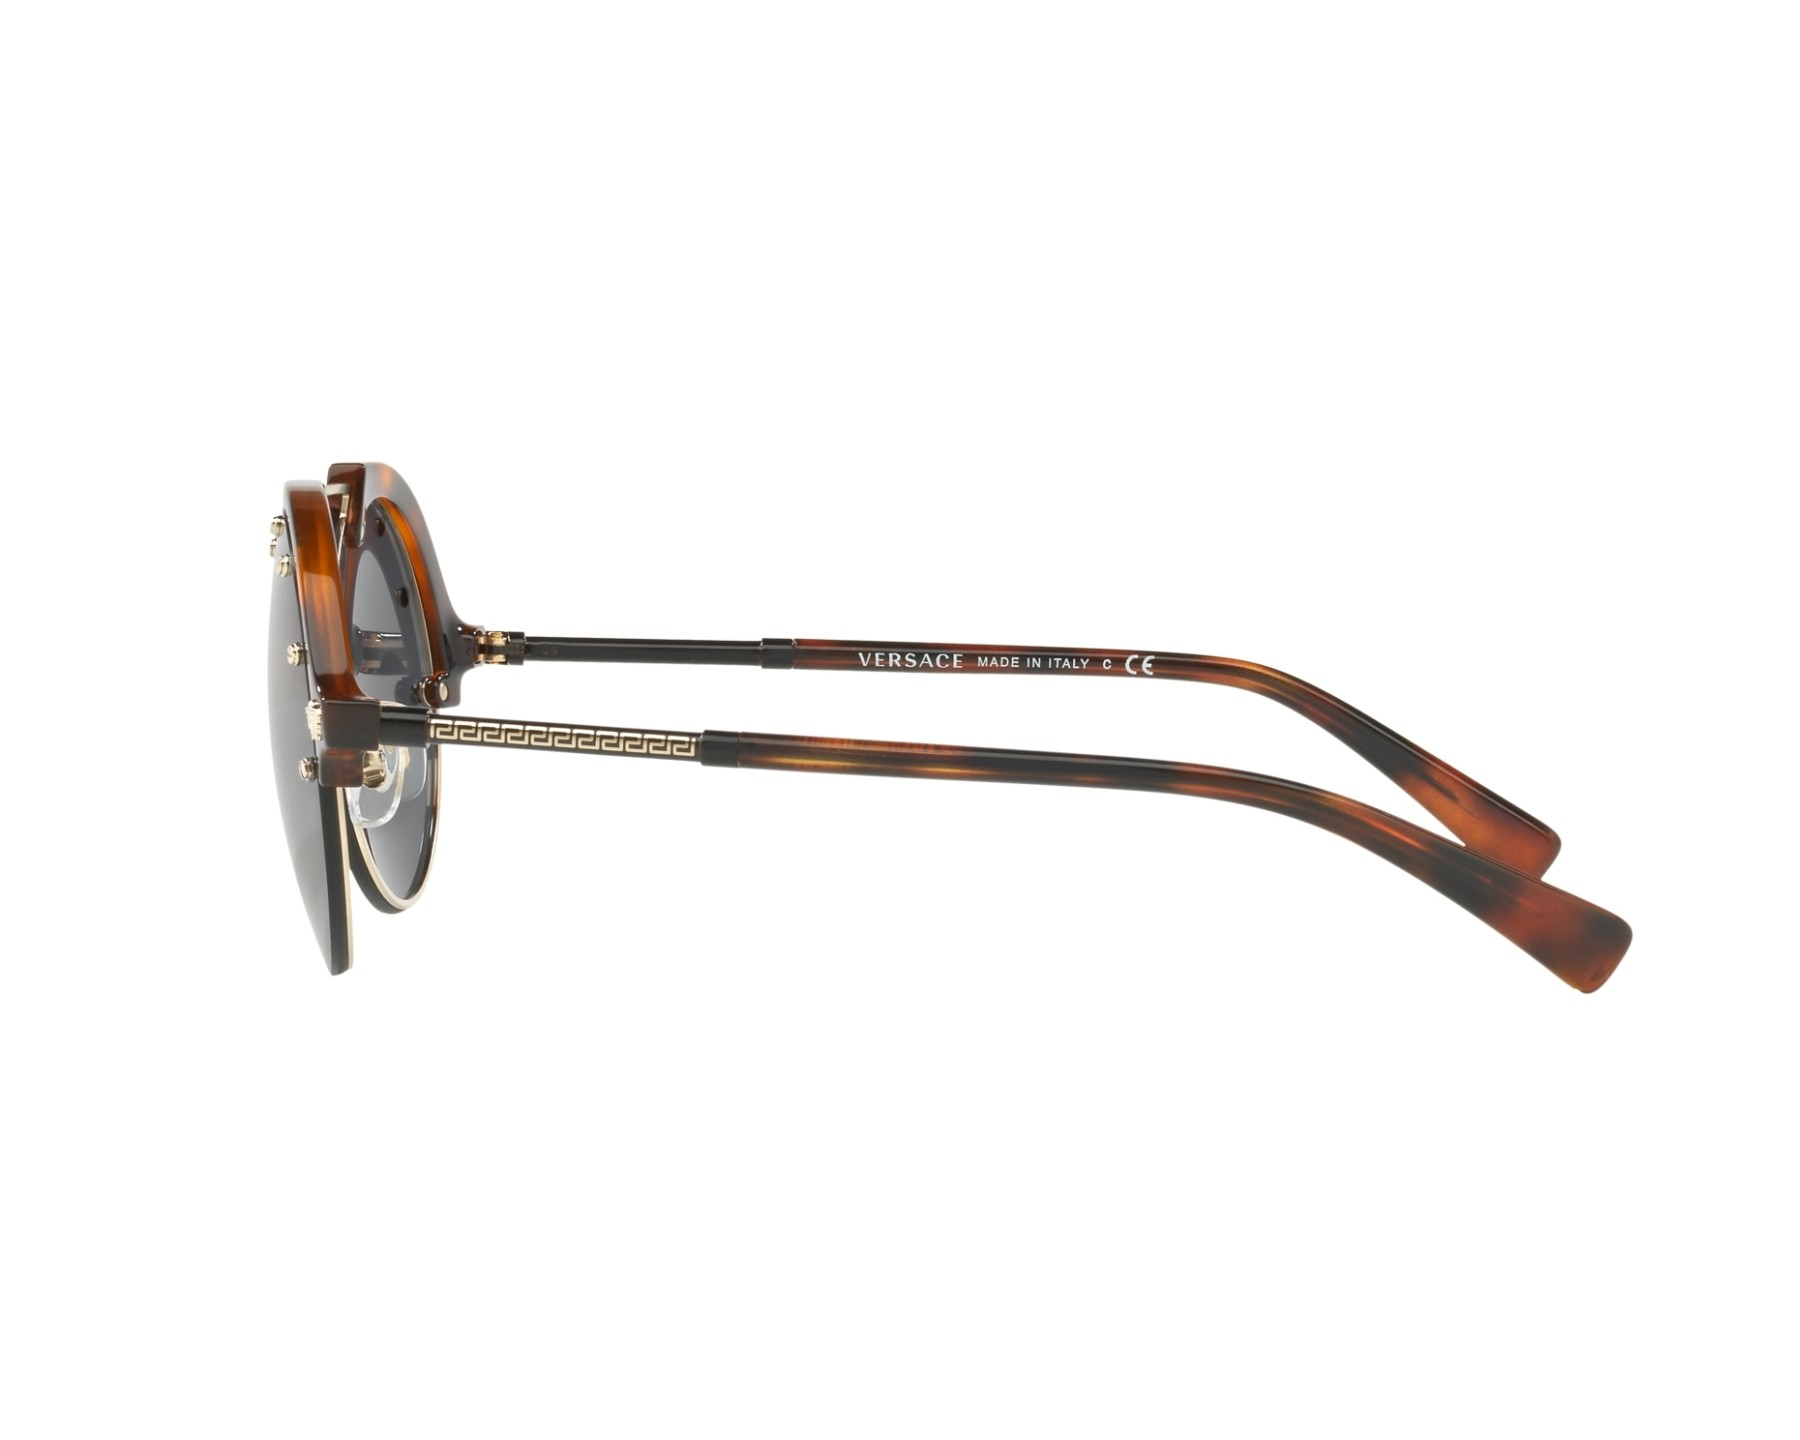 56324bc65c83e Sunglasses Versace VE-4337 260 87 53-20 Gold Brown 360 degree view